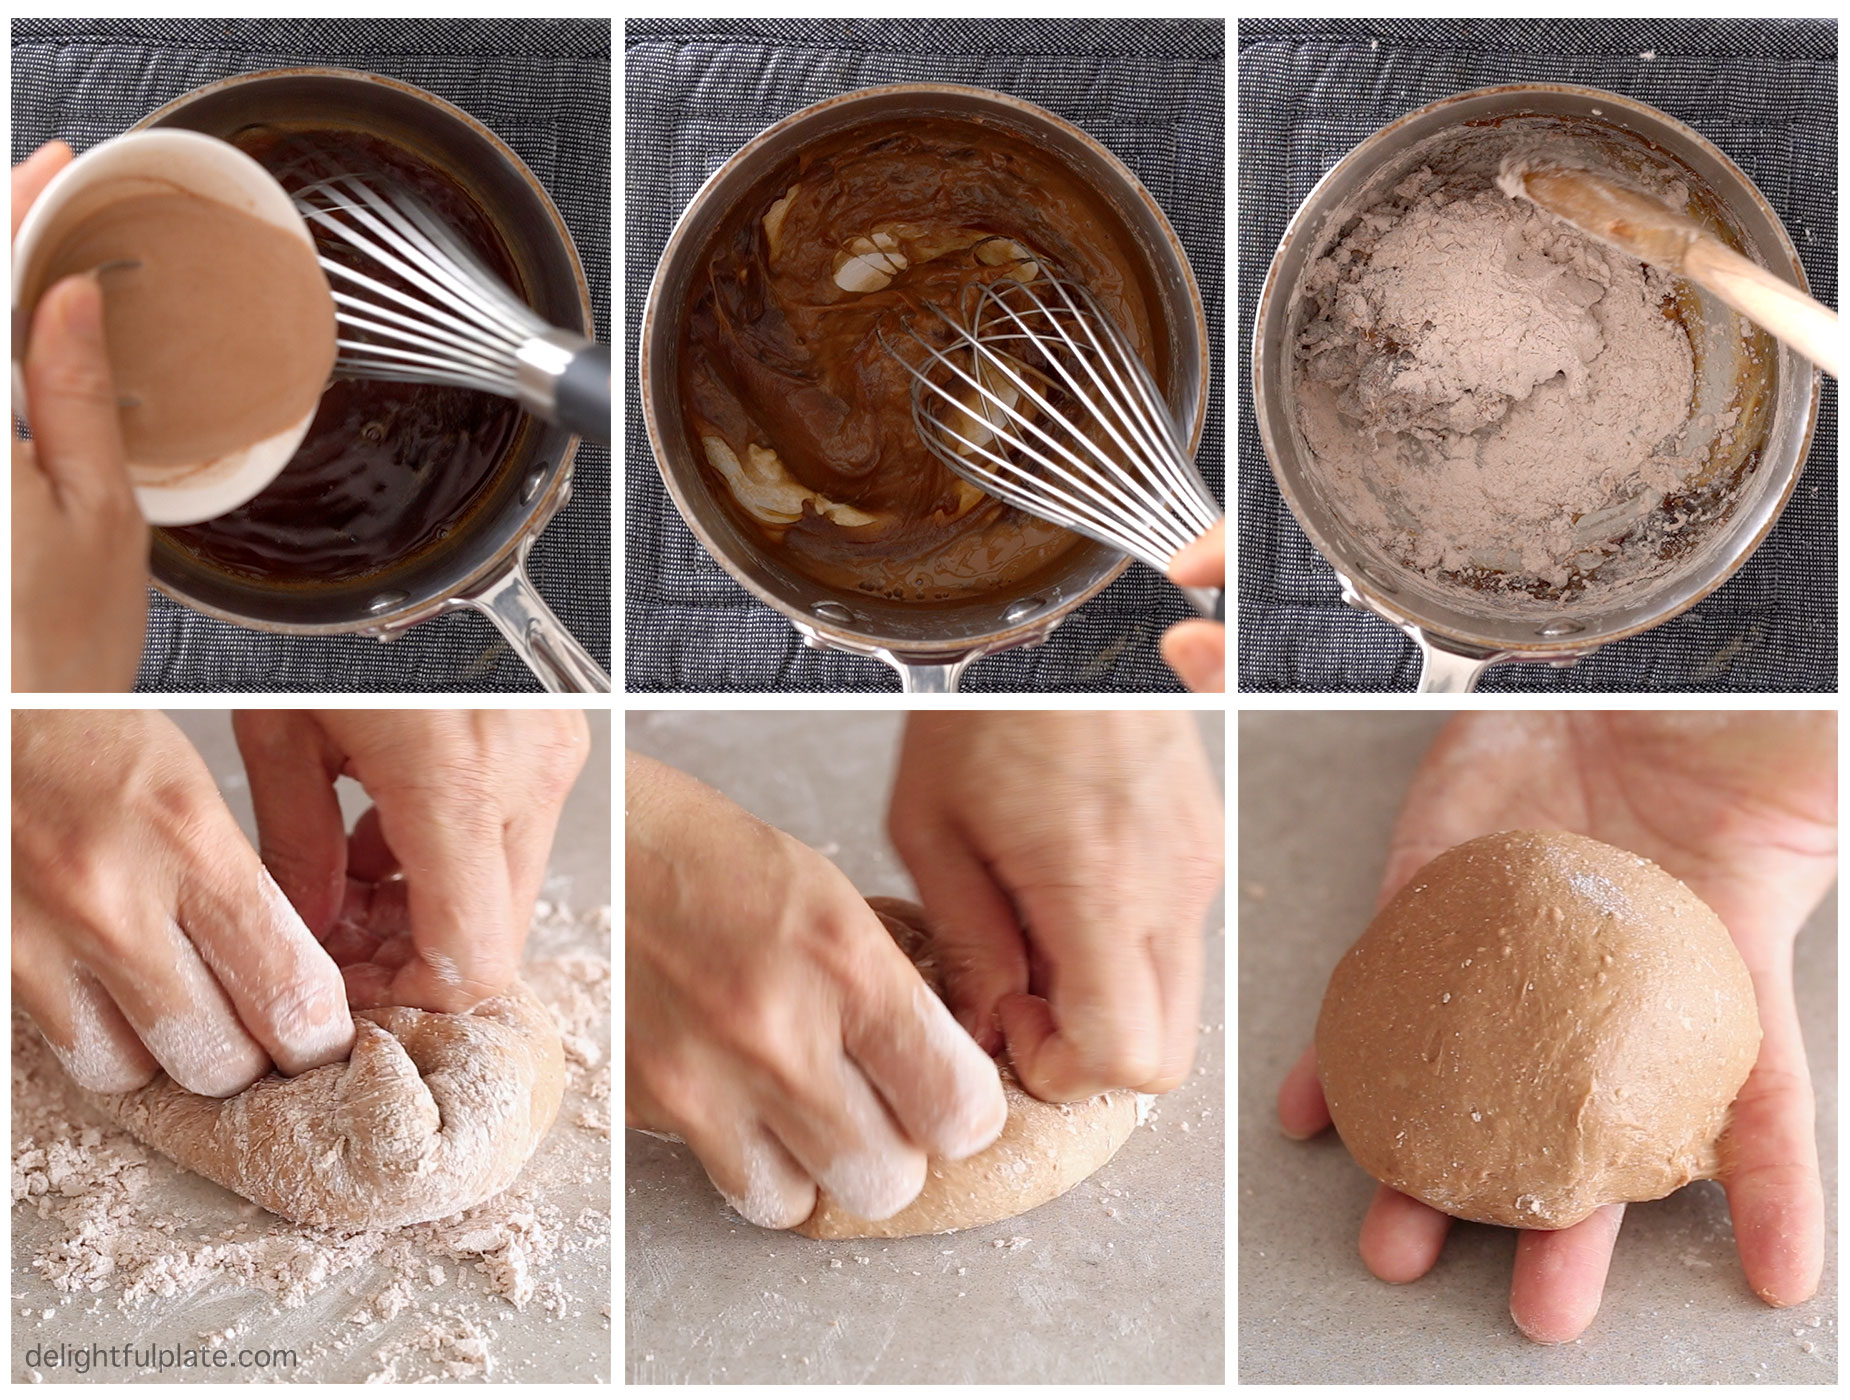 Steps to make the dough: make a tapioca starch slurry, add it to hot water, then add flour and knead into dough